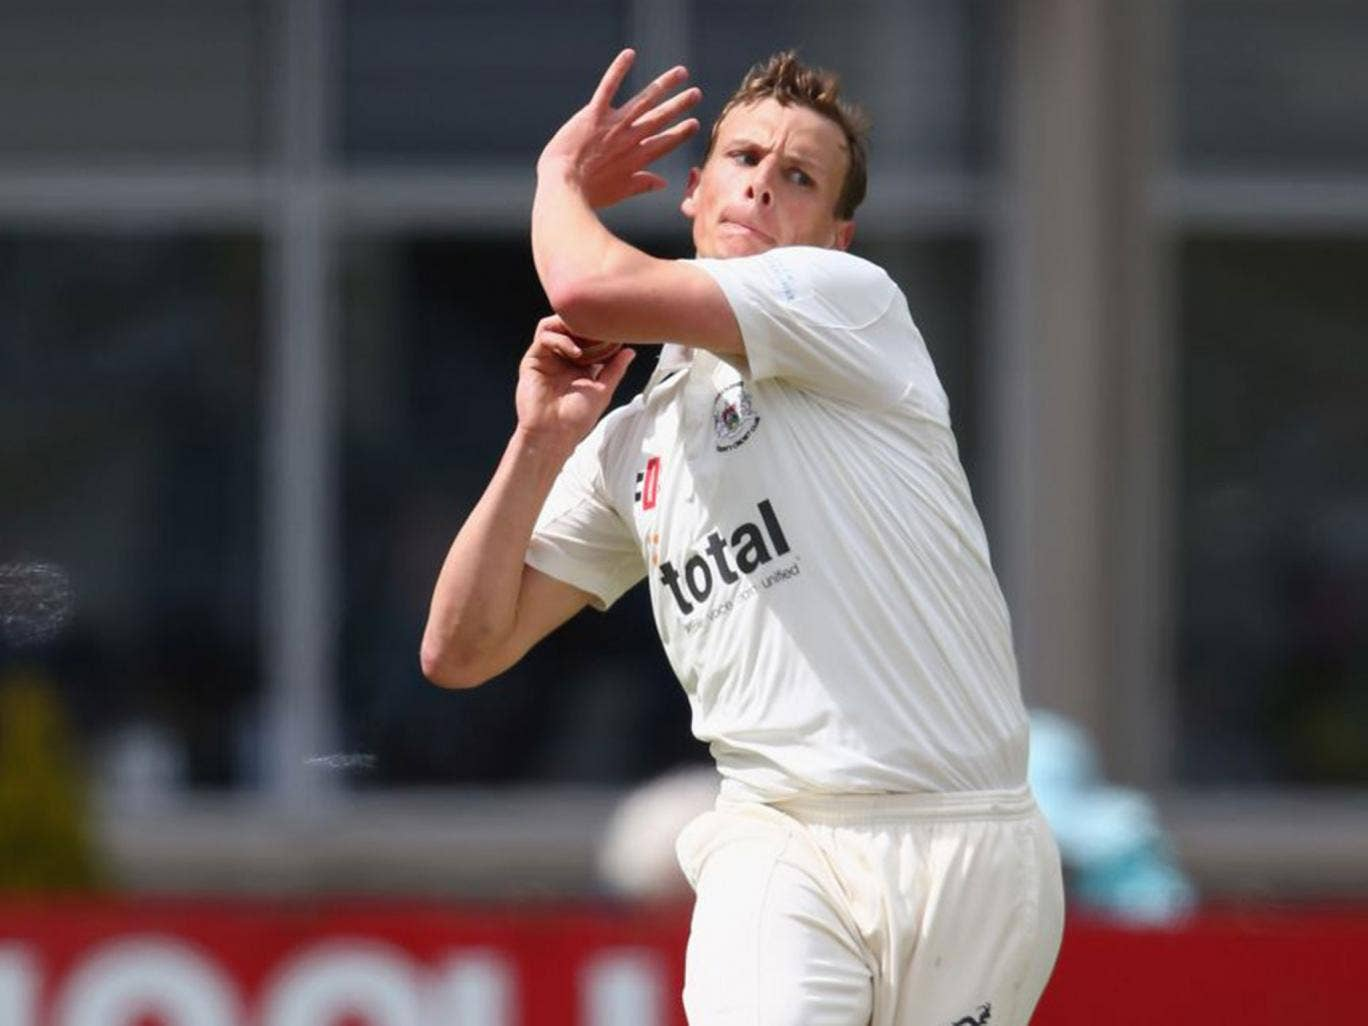 Will Gidman took 4 for 14 as Kent were bowled out for 114